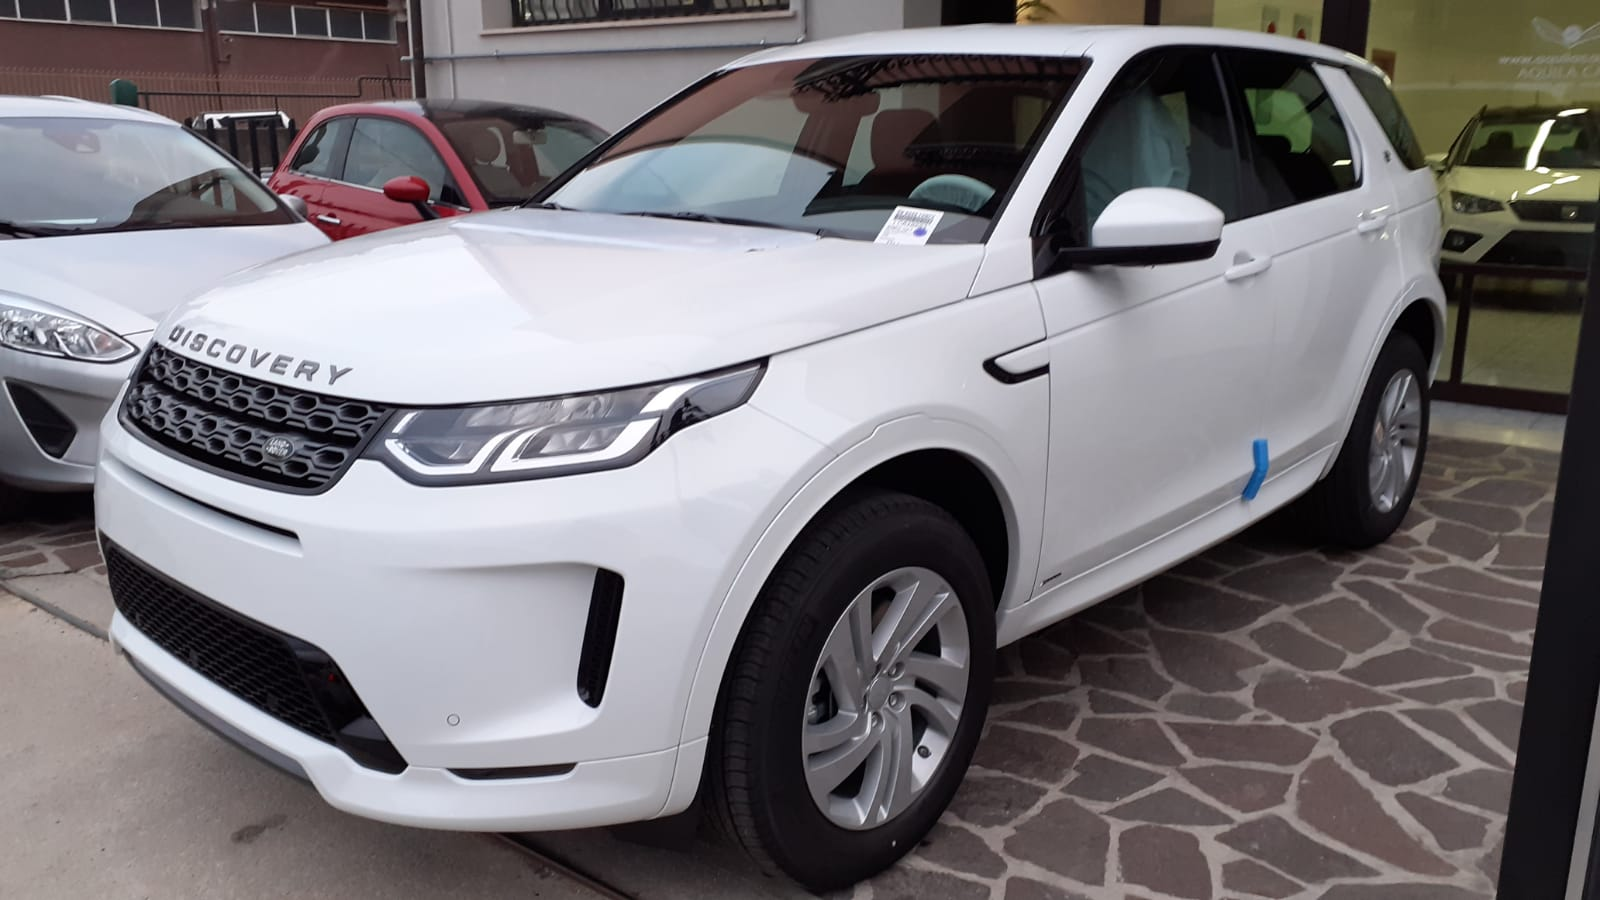 NUOVO LAND ROVER DISCOVERY SPORT MY 20